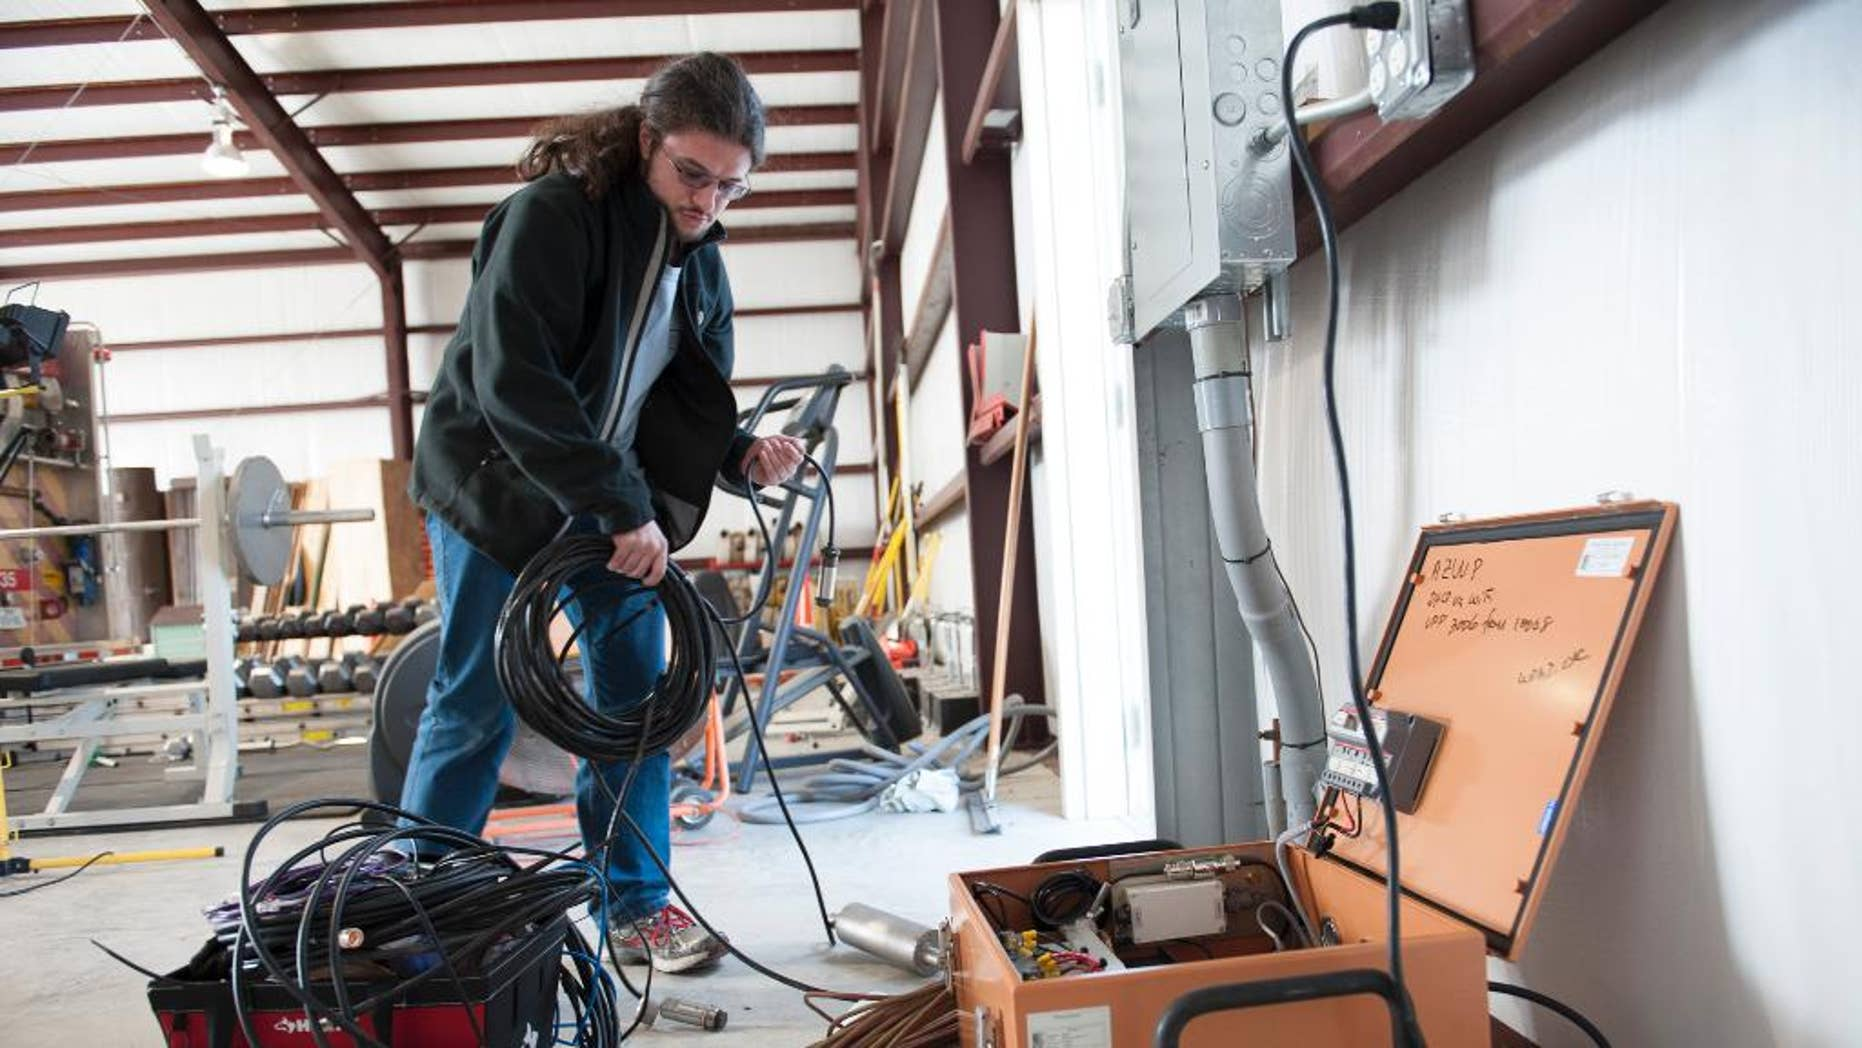 "This handout photo, taken Jan. 16, 2014, provided by Southern Methodist University, shows Remi Oldham, an SMU geophysics graduate student, running a cable to connect the seismometer to communications interface equipment housed in the orange metal box in Willow Park, Texas. The interface equipment allows the transmission of the data collected by the seismometer back to SMU. With real-time monitors, scientists linked a swarm of small earthquakes west of Fort Worth, Texas, to nearby natural gas wells and wastewater injection. In 84 days from November 2013 to January 2014, the area around Azle, Texas, shook with 27 magnitude 2 or greater earthquakes, while scientists at Southern Methodist University and the U.S. Geological Survey monitored the shaking. It's an area that had no recorded quakes for 150 years on faults that ""have been inactive for hundreds of millions of years,"" said SMU geophysicist Matthew Hornbach. (Hillsman Stuart Jackson/SMU via AP)  SMU, Dedman School of Humanities, Geology, Research, Seismic, Off Campus, Willow Park, Texas, Secondary Fire Station, Heather Deshon, Chris Hayward, Remi Oldham"